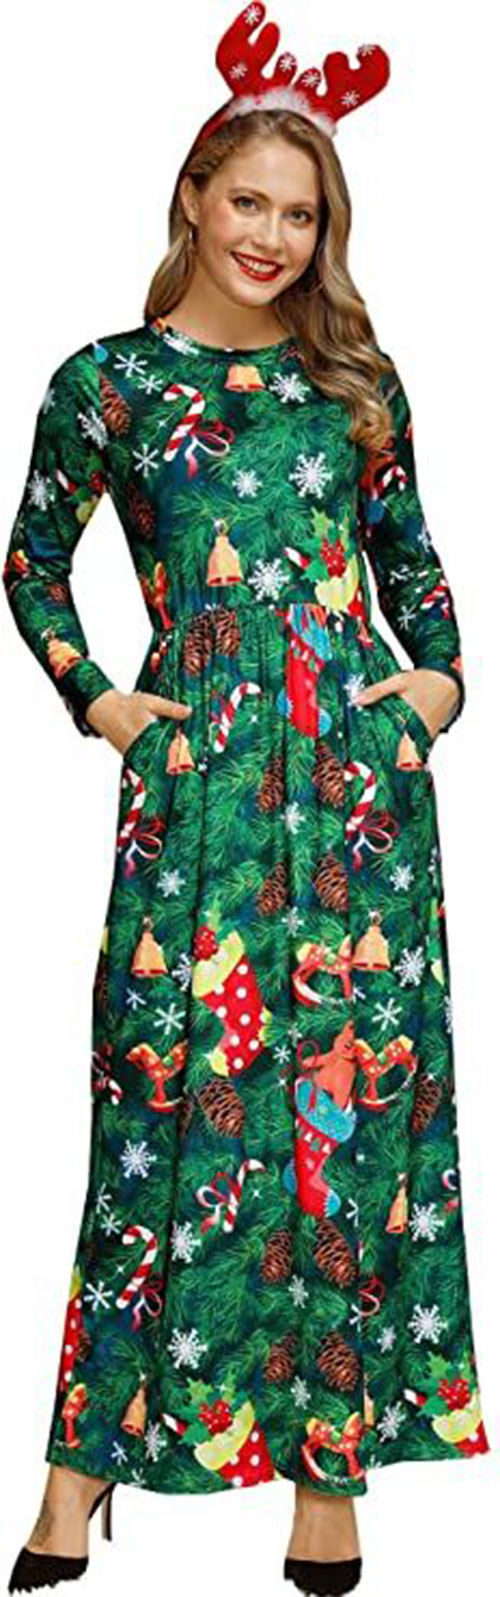 Christmas-Tree-Costumes-Outfits-For-Kids-Adults-2020-12